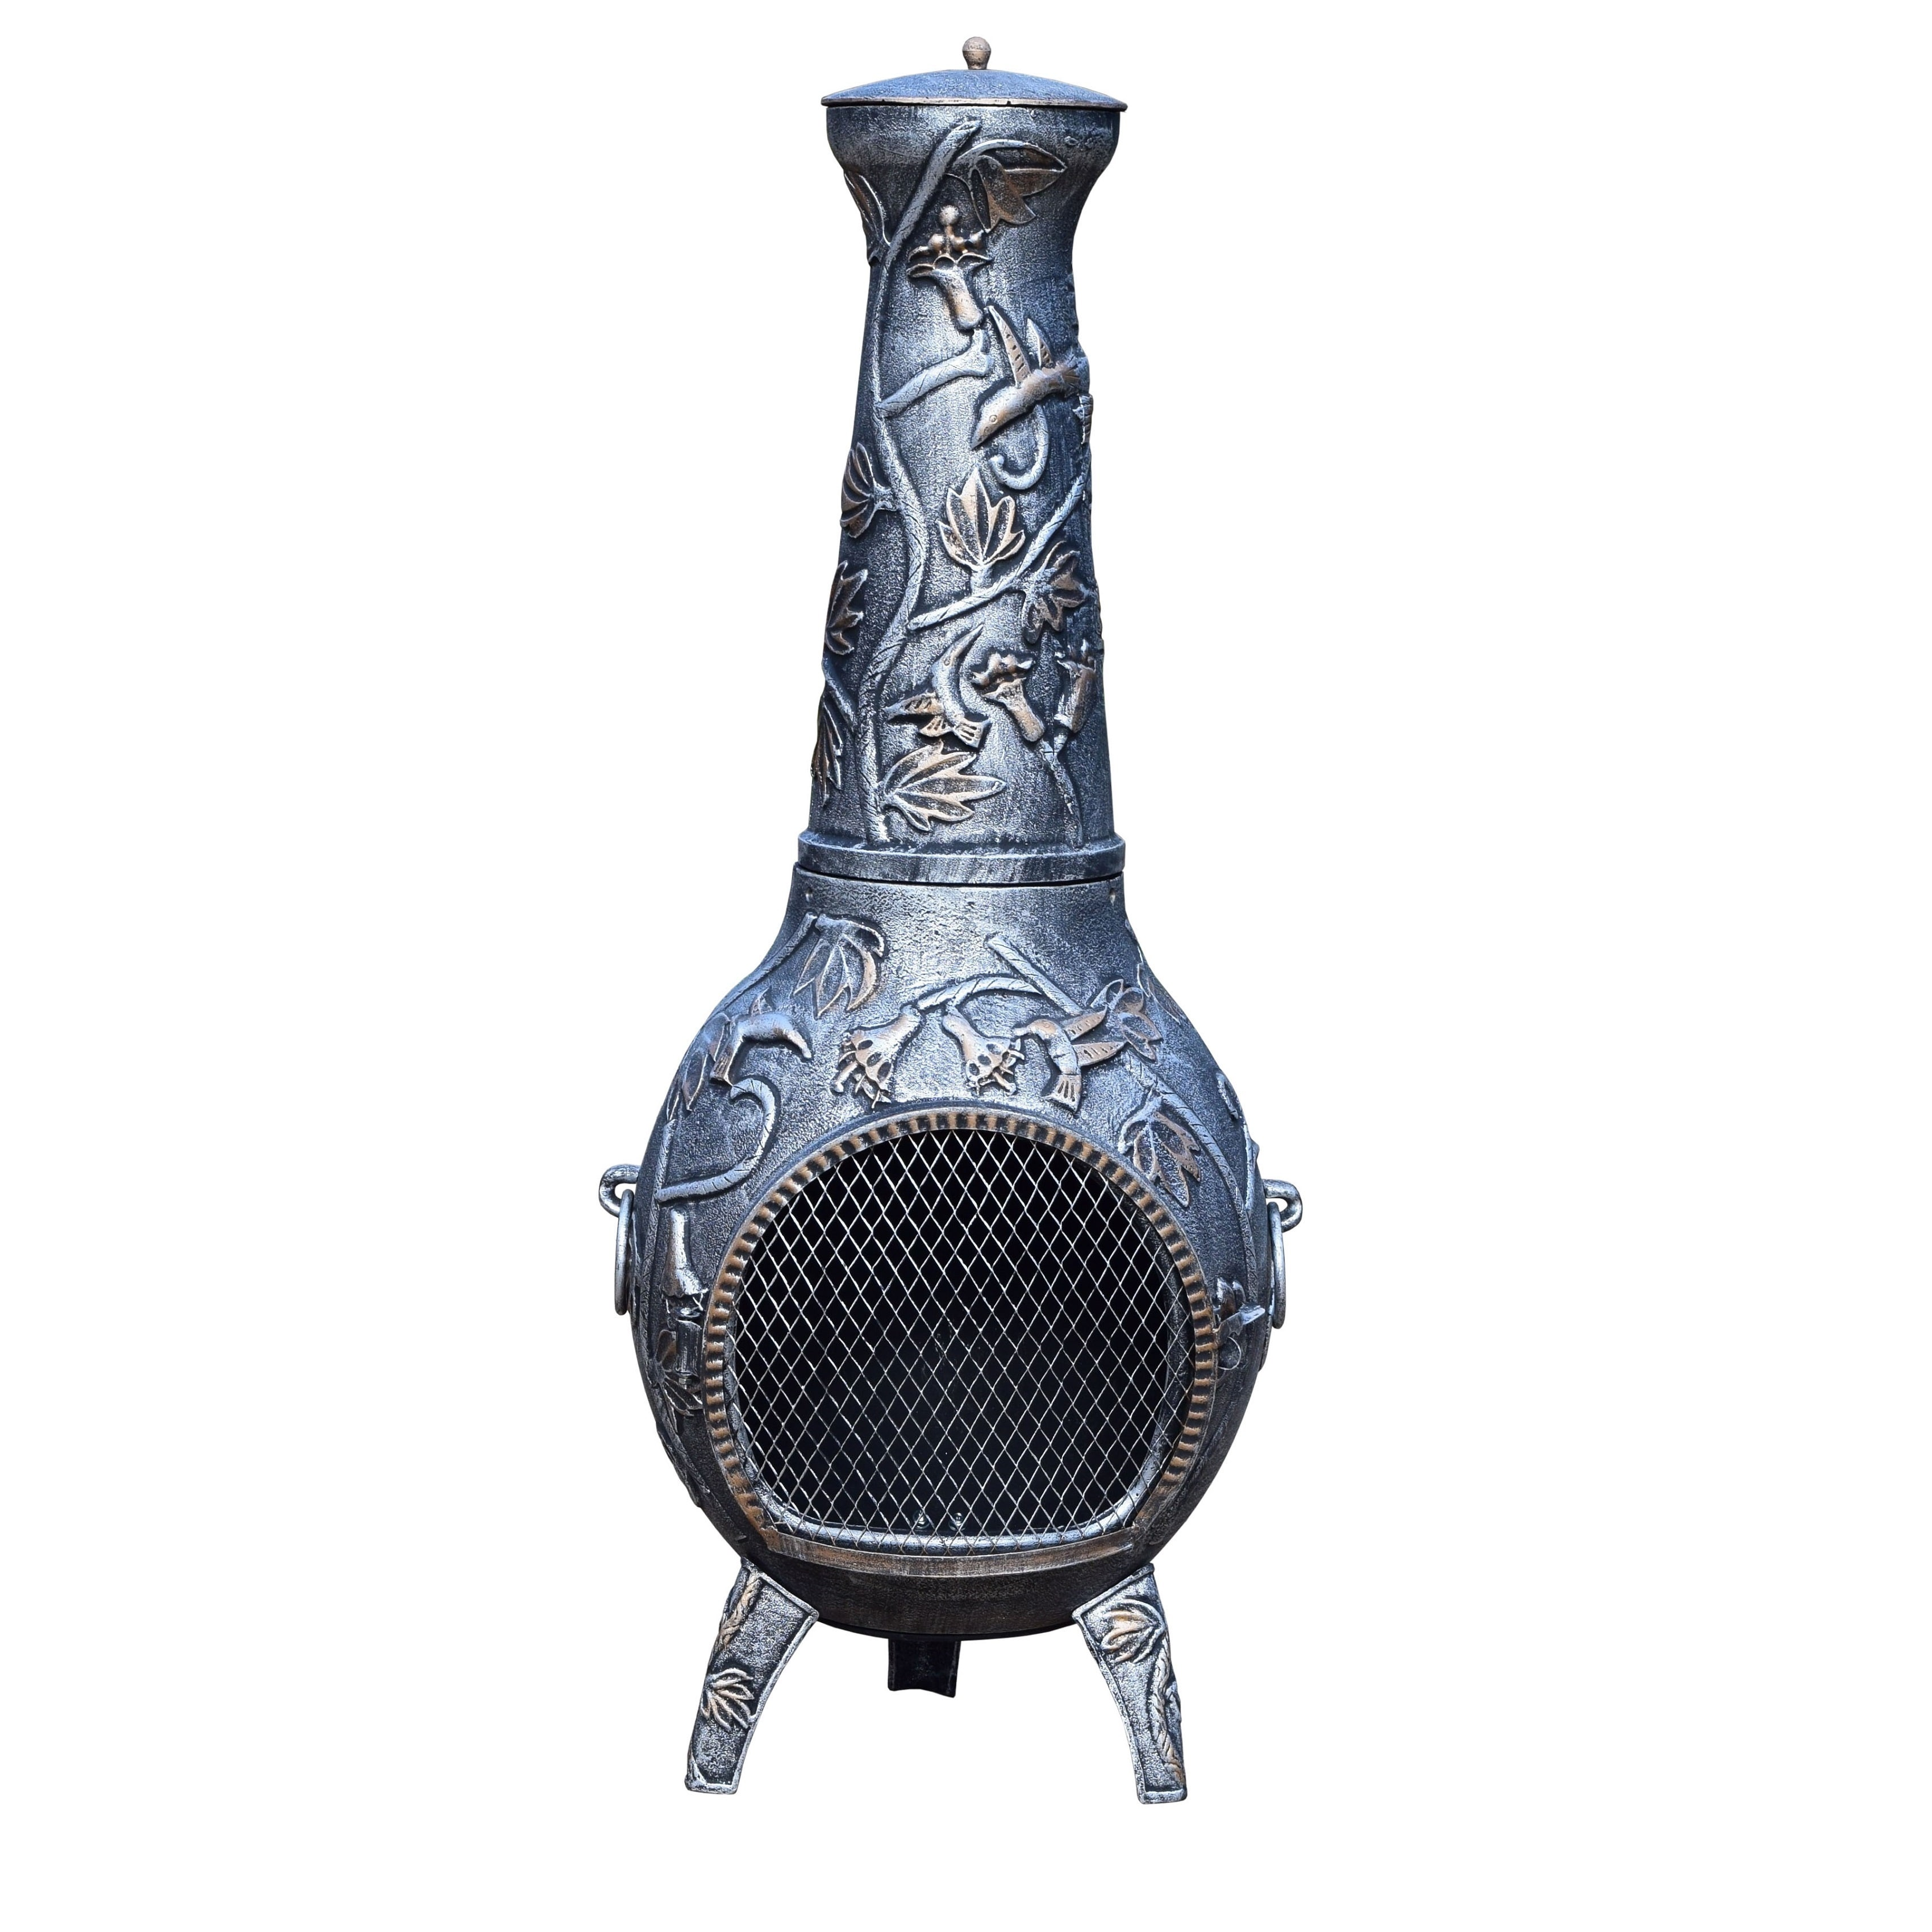 Oakland Living Corporation Silver Wrought Iron Lattice Chiminea With Built-in Handles, Grate, and Spark Guard... by Overstock